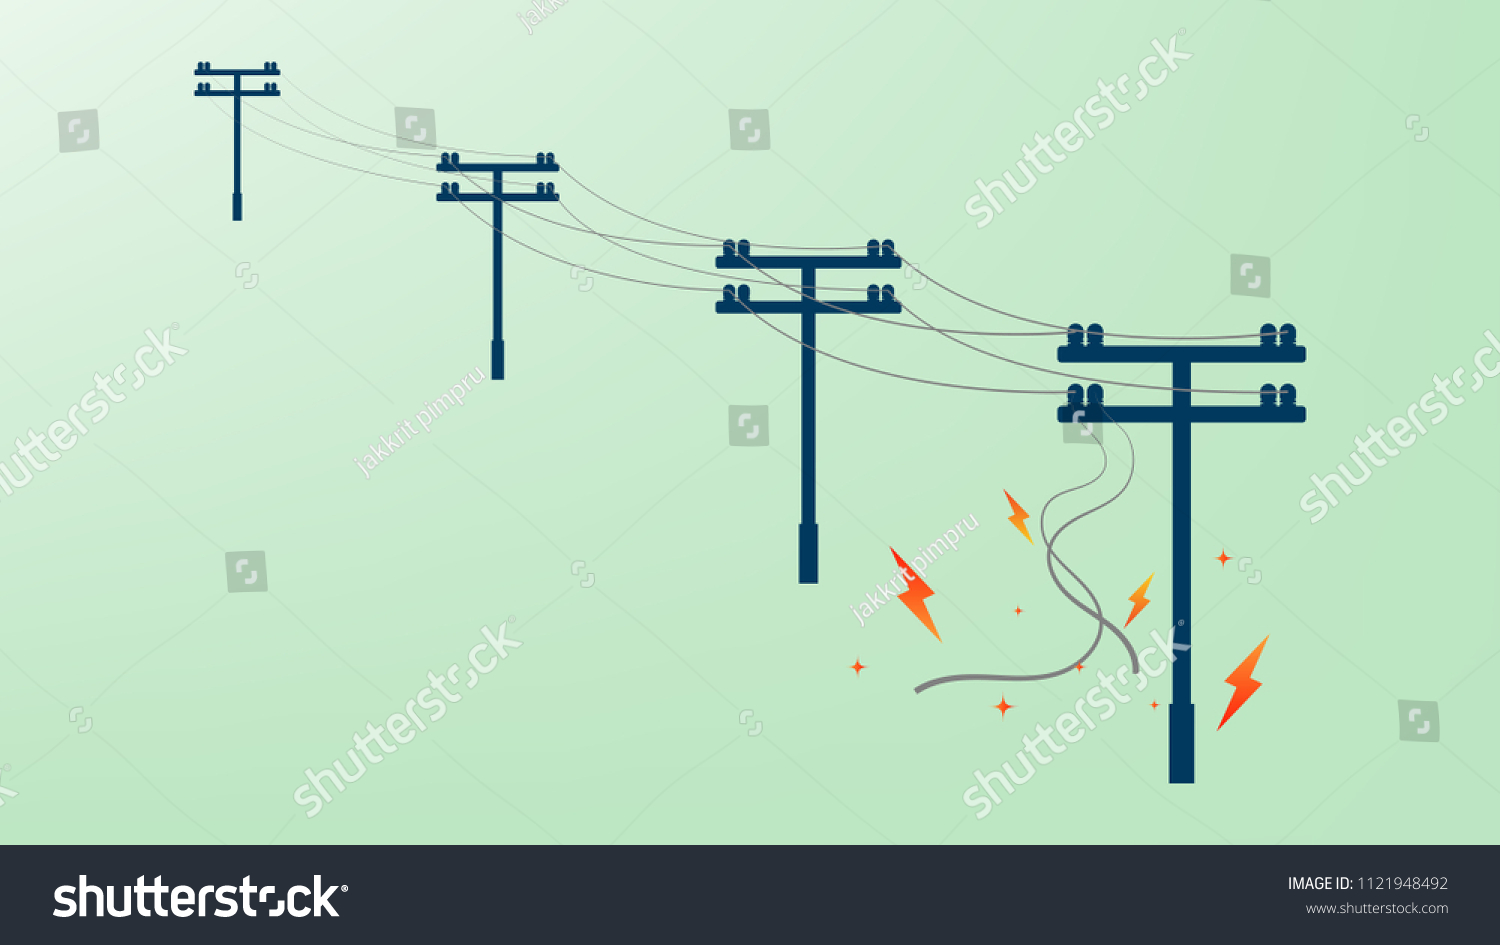 Power Cable Damaged Short Circuit Fire Stock Vector Royalty Free Transmission Line And With Spark On Electricity Post